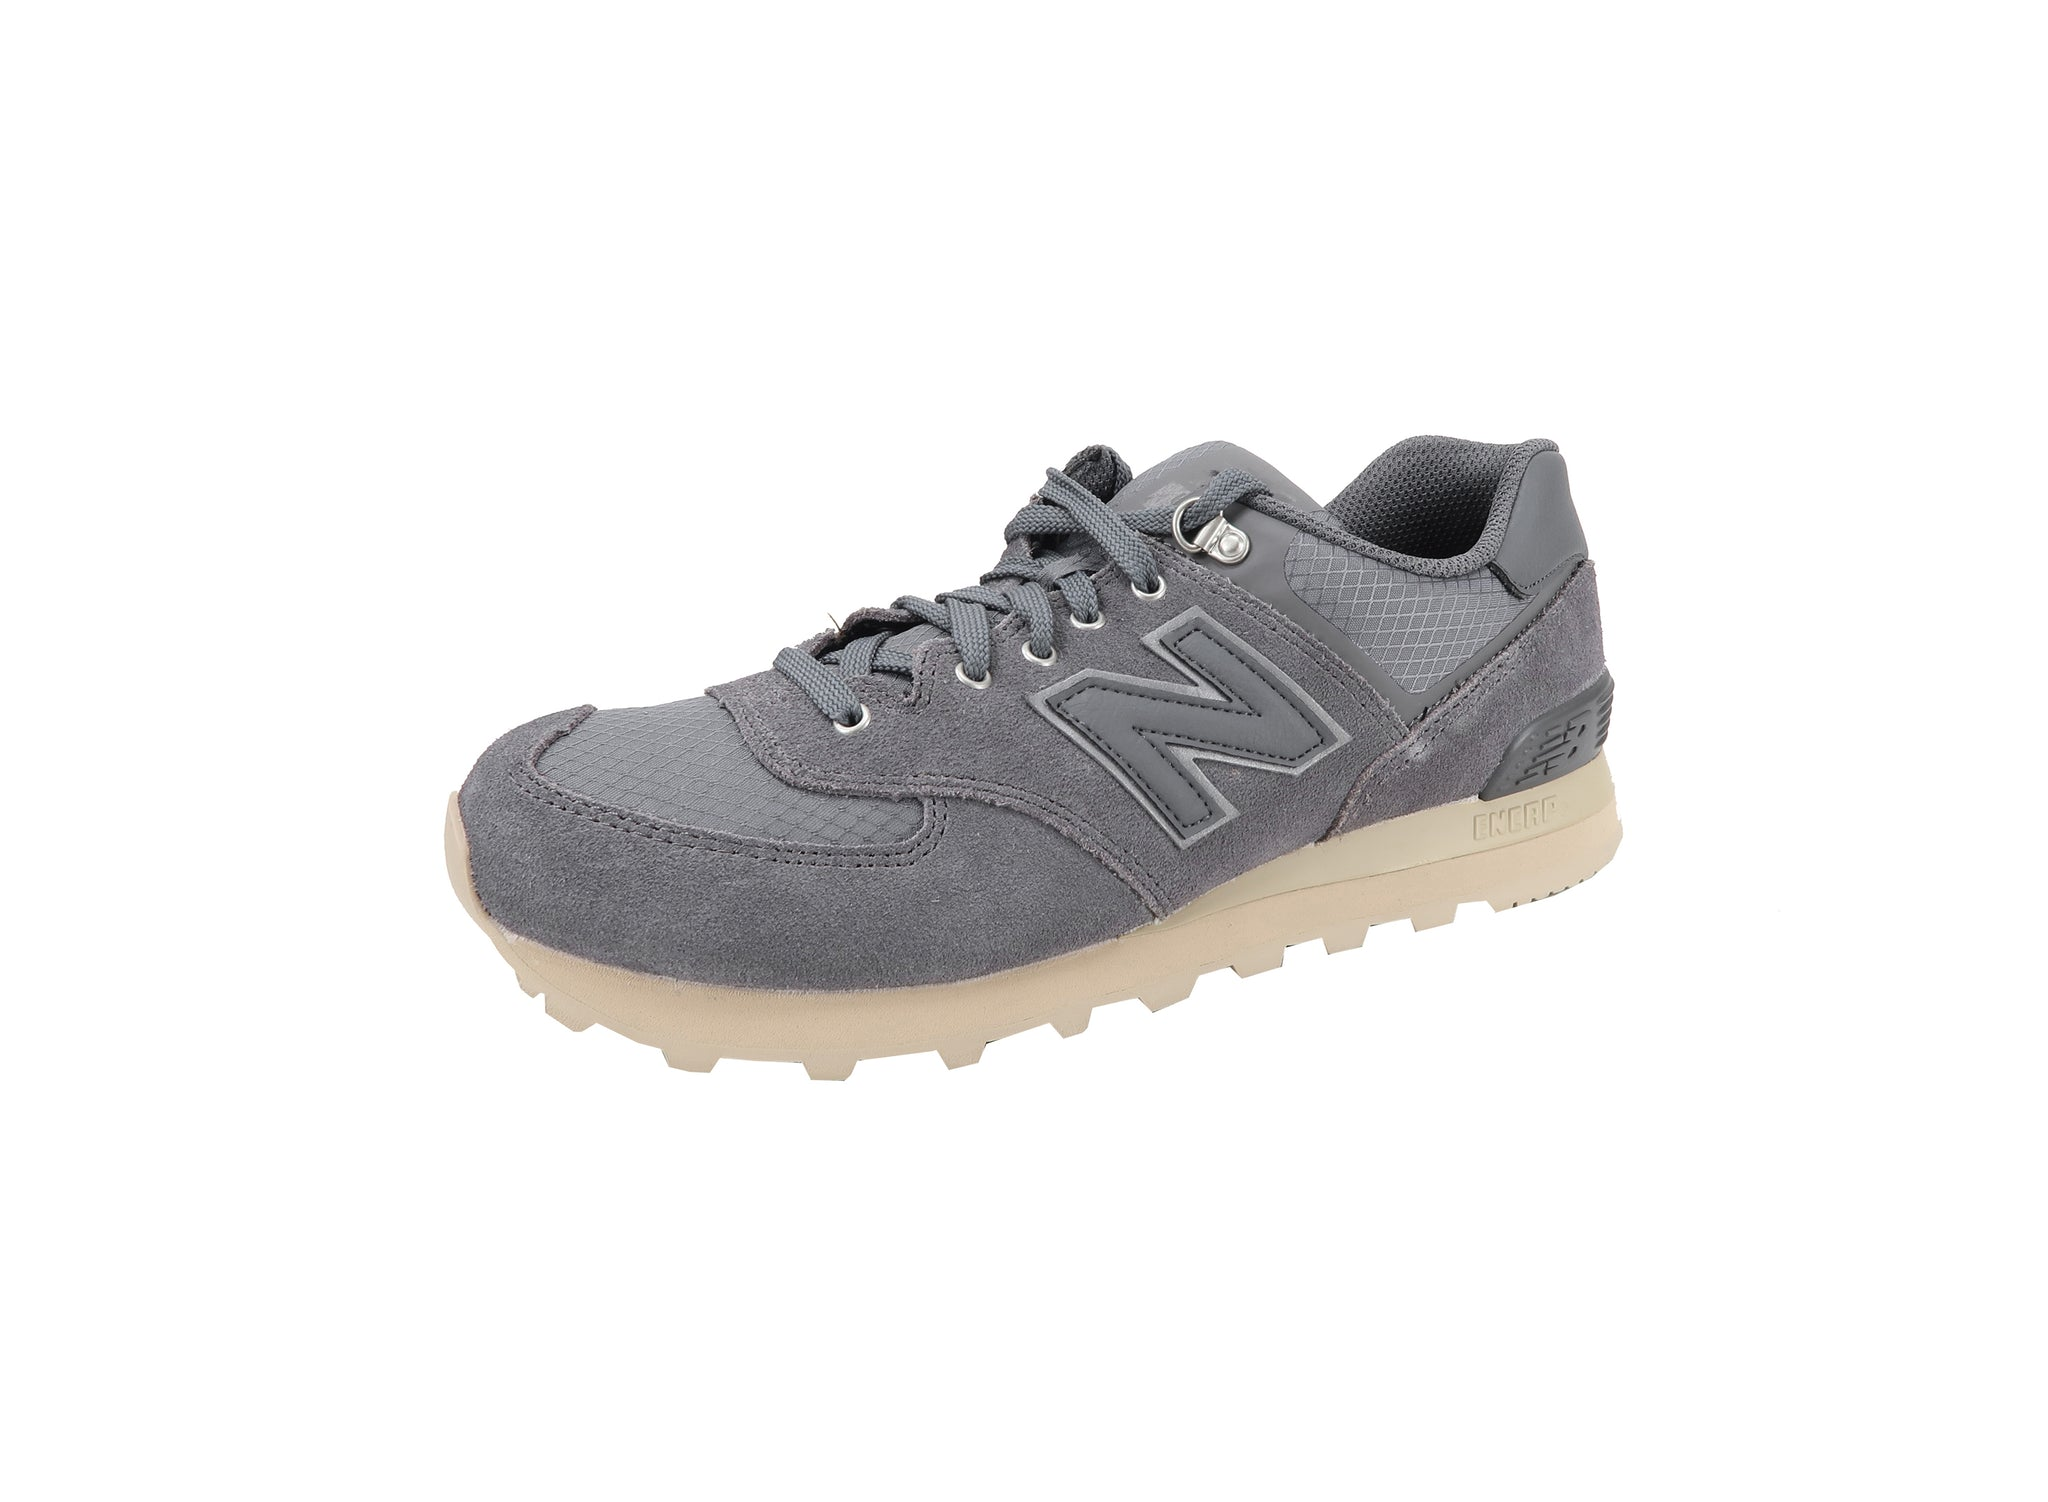 New Balance 574 Grey/Beige Men's Shoes